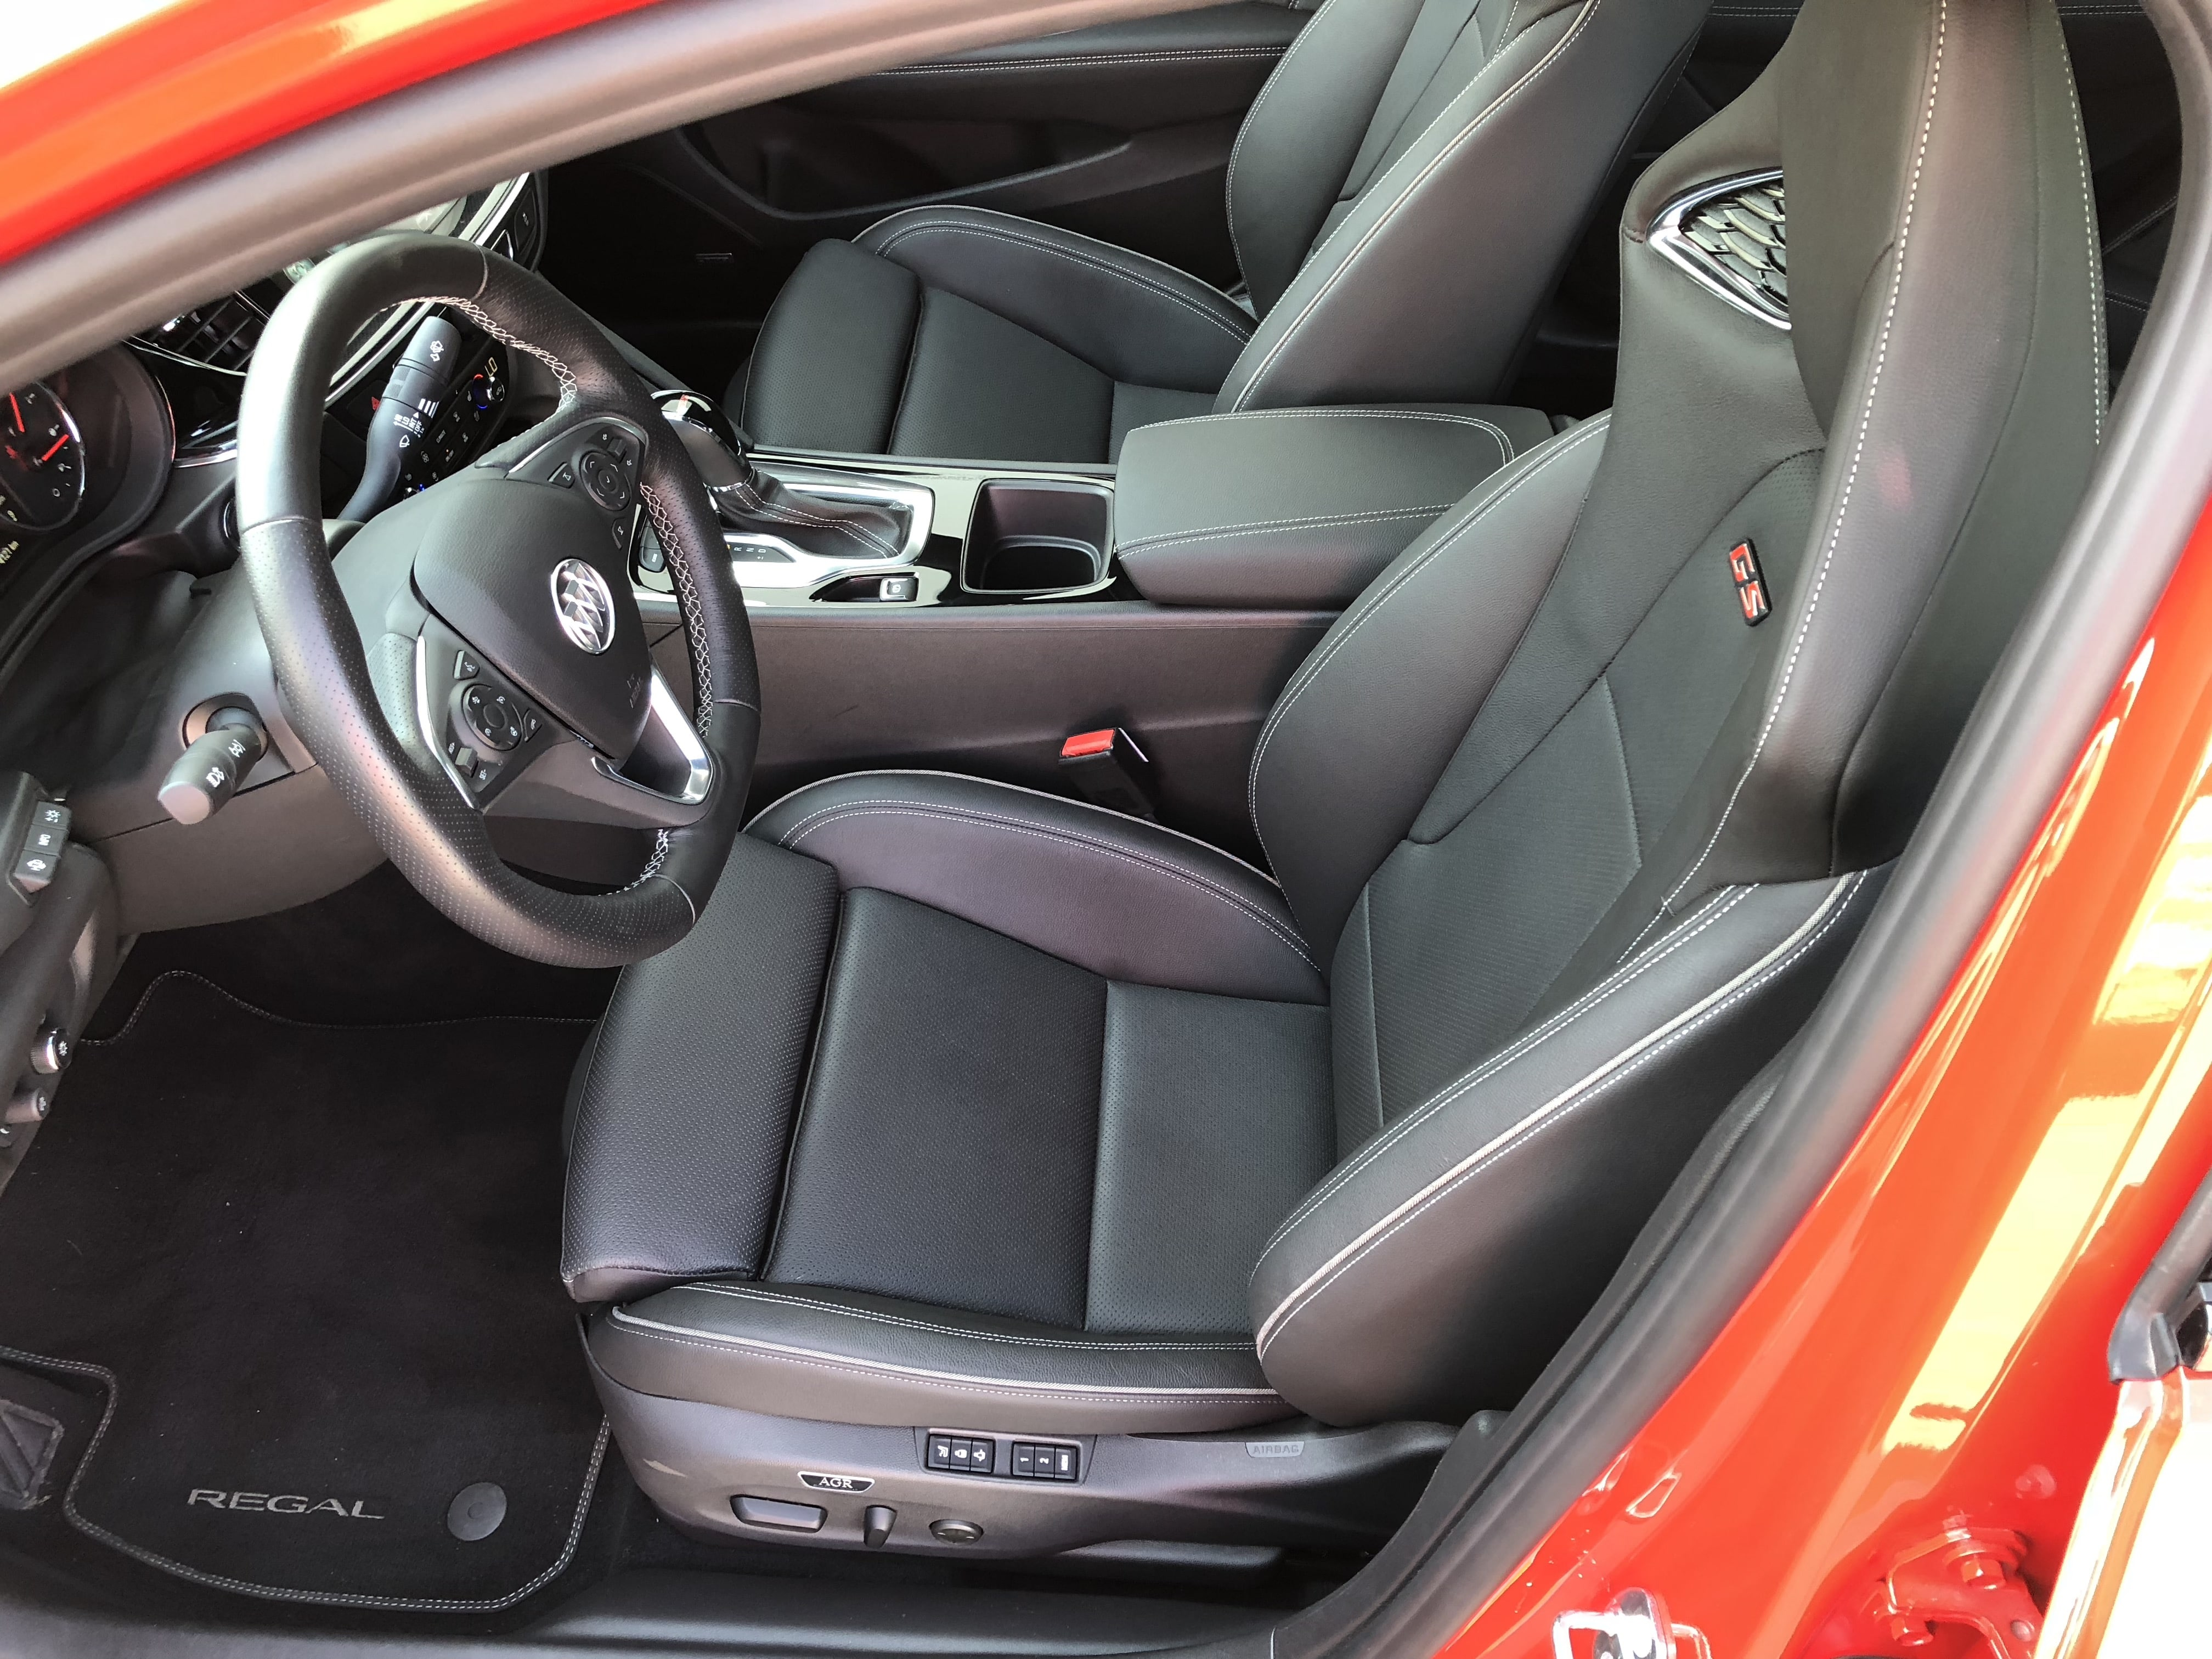 Buick Buick Regal Sportback interior specifications